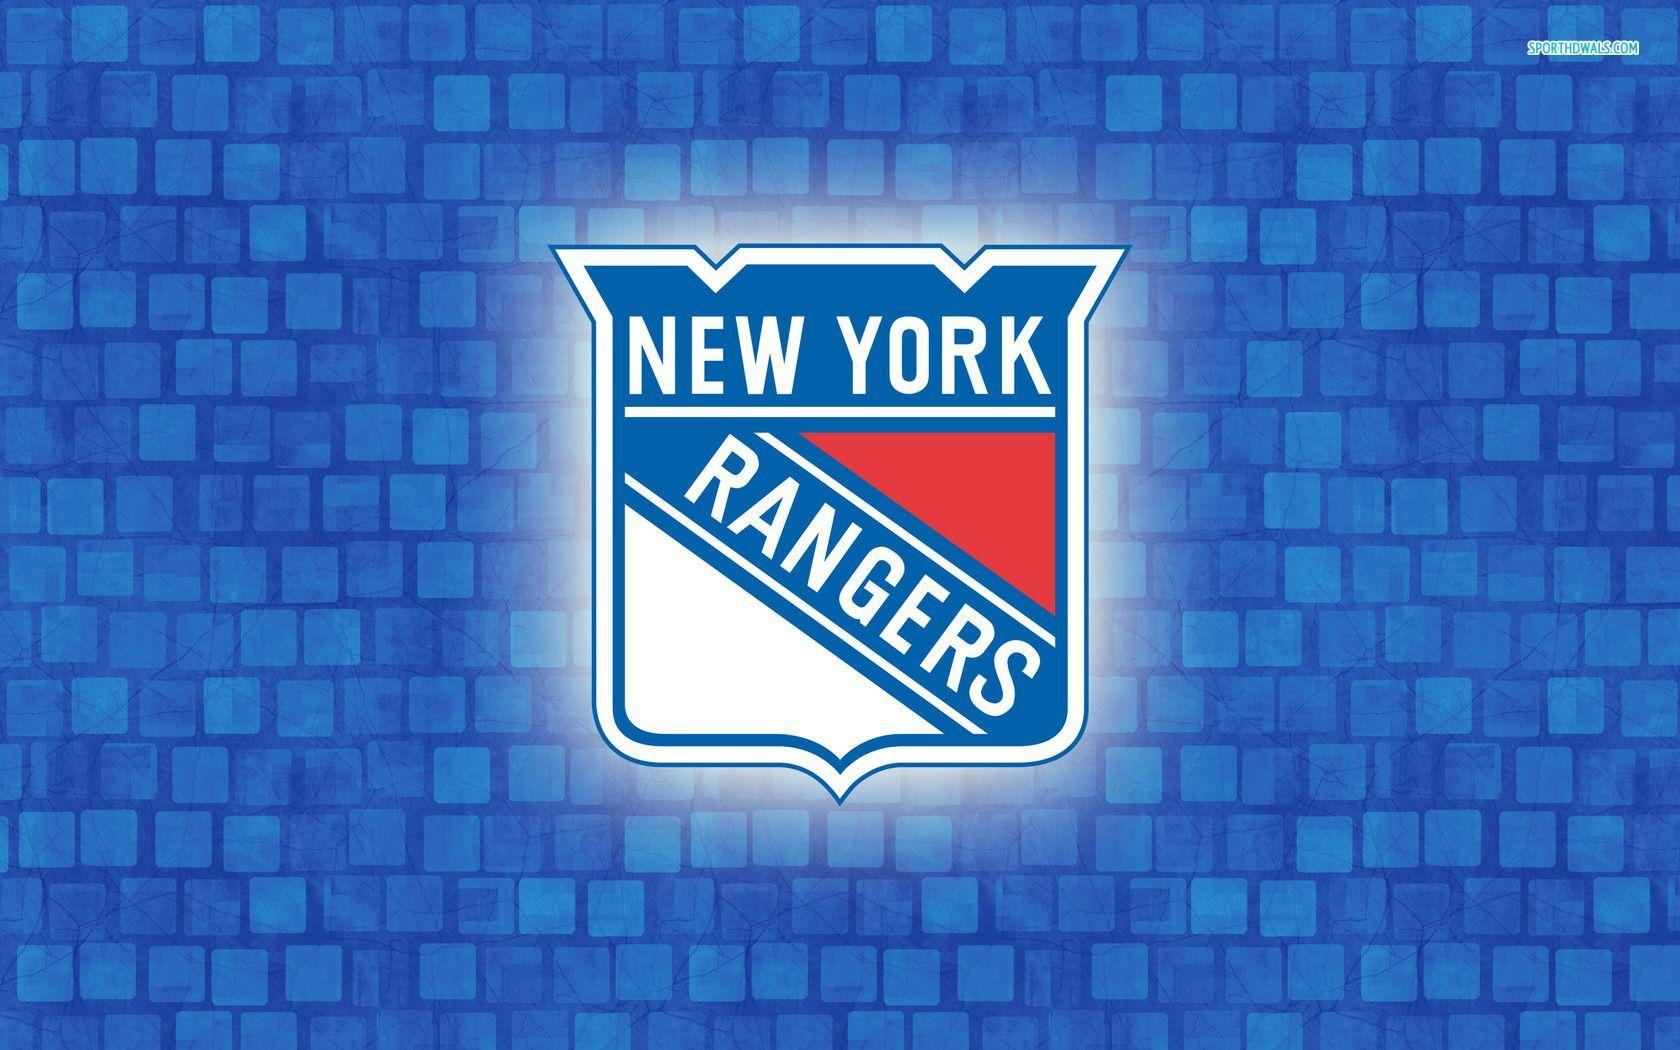 New York Rangers Cool Wallpapers 25851 Image